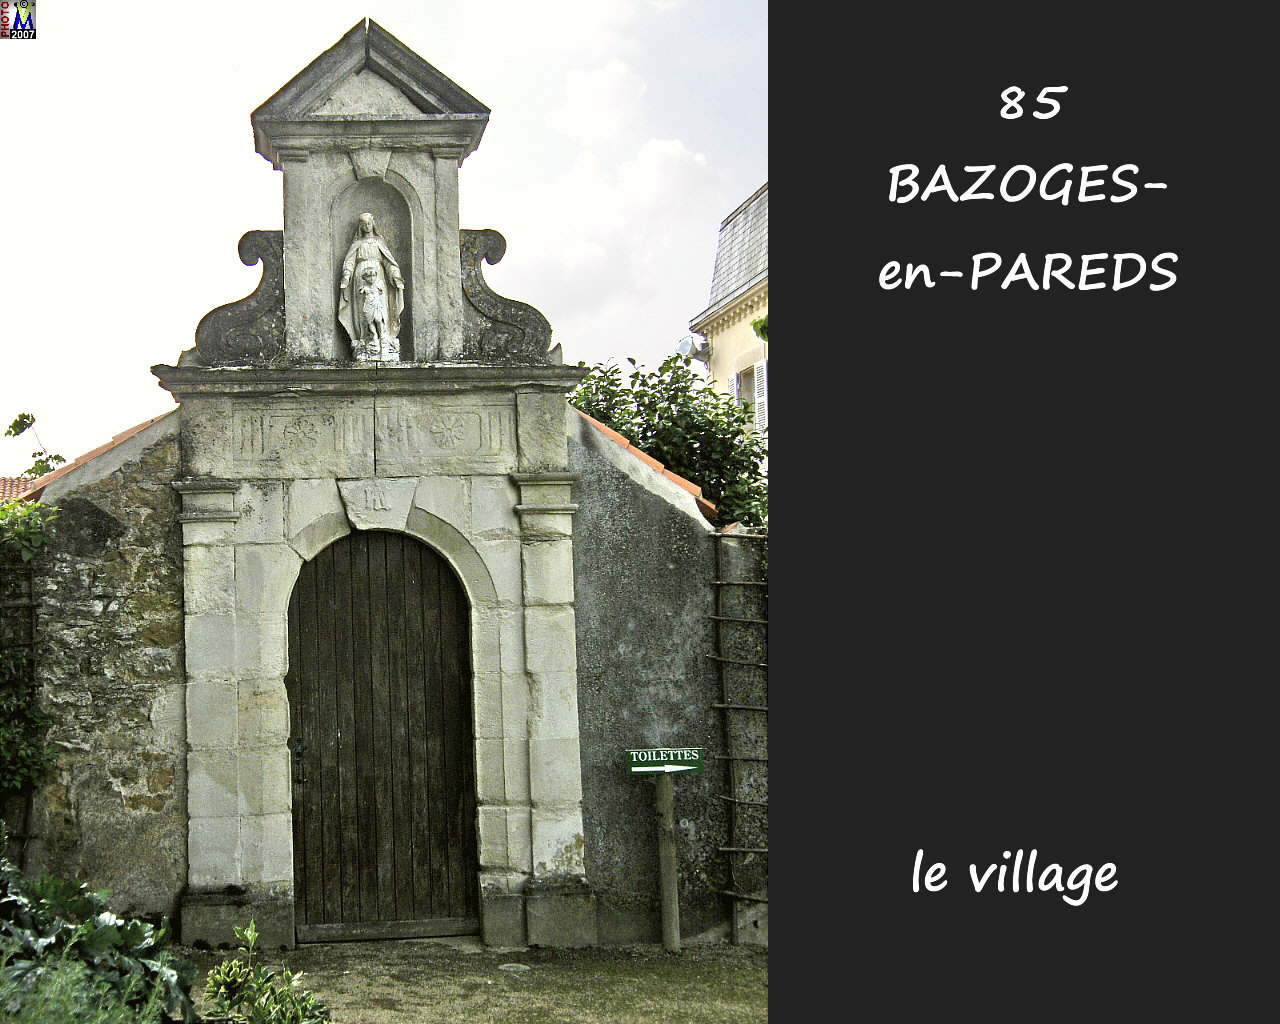 85BAZOGES-PAREDS_village_102.jpg